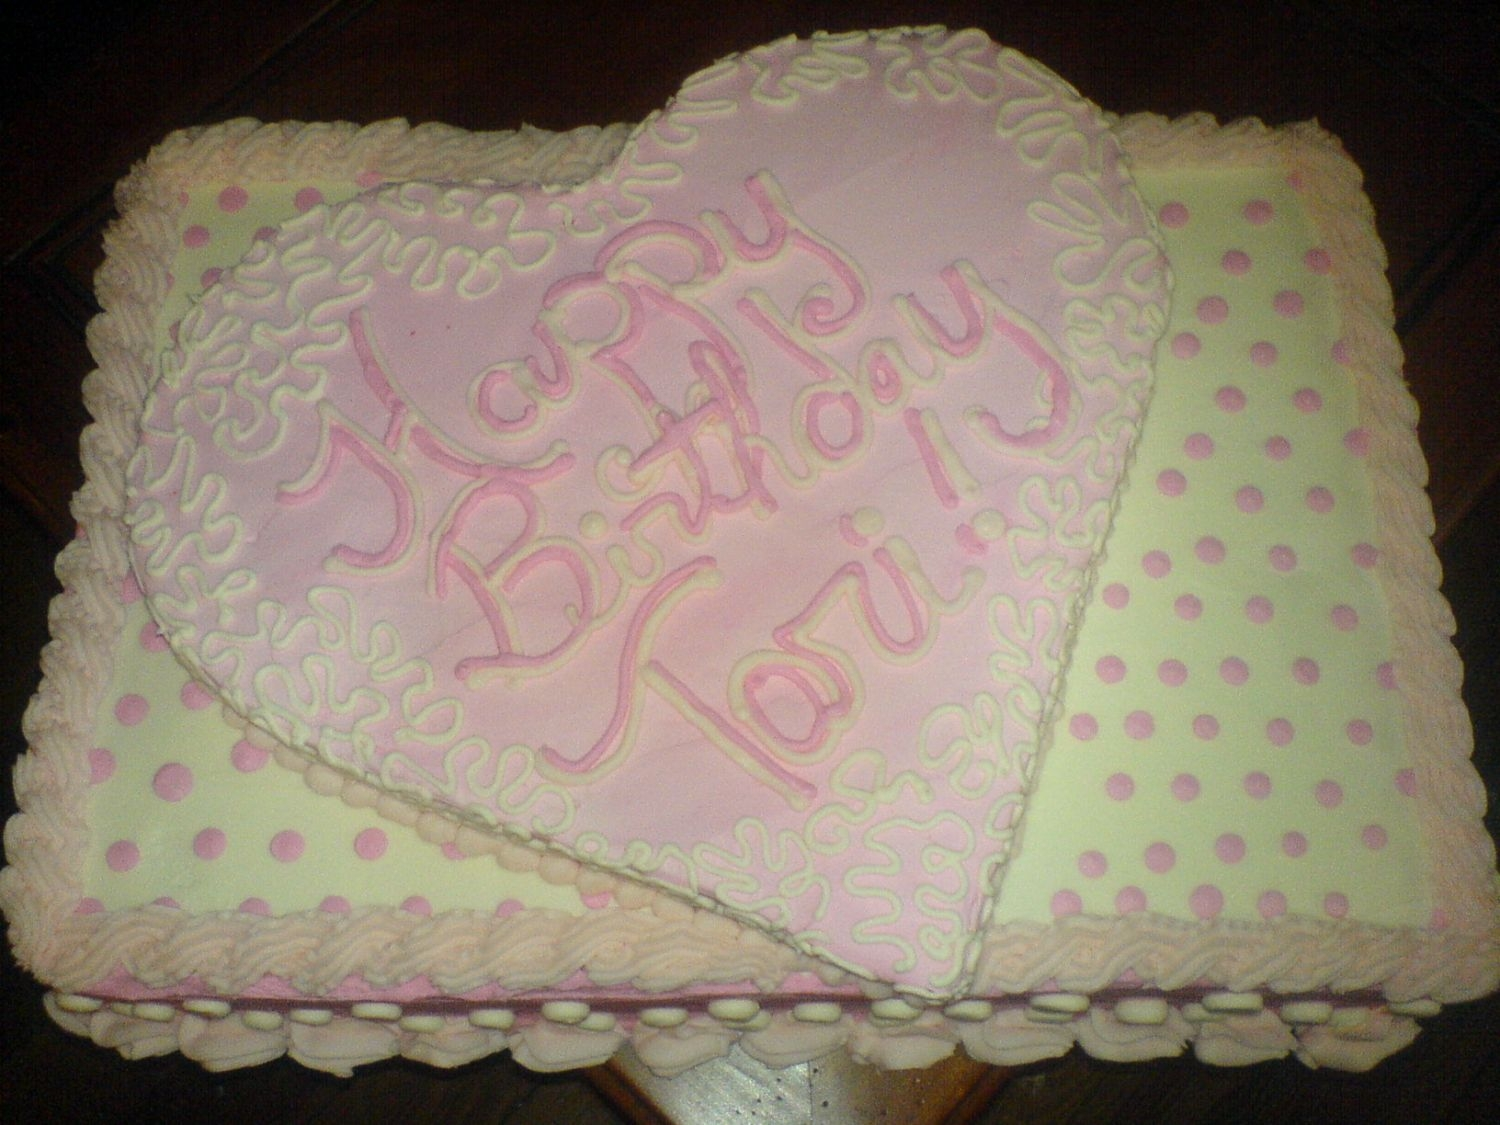 Birthday Cake This is for a girl turning 13. It is two 12x18's with a heart on top! Thanks for looking!!!